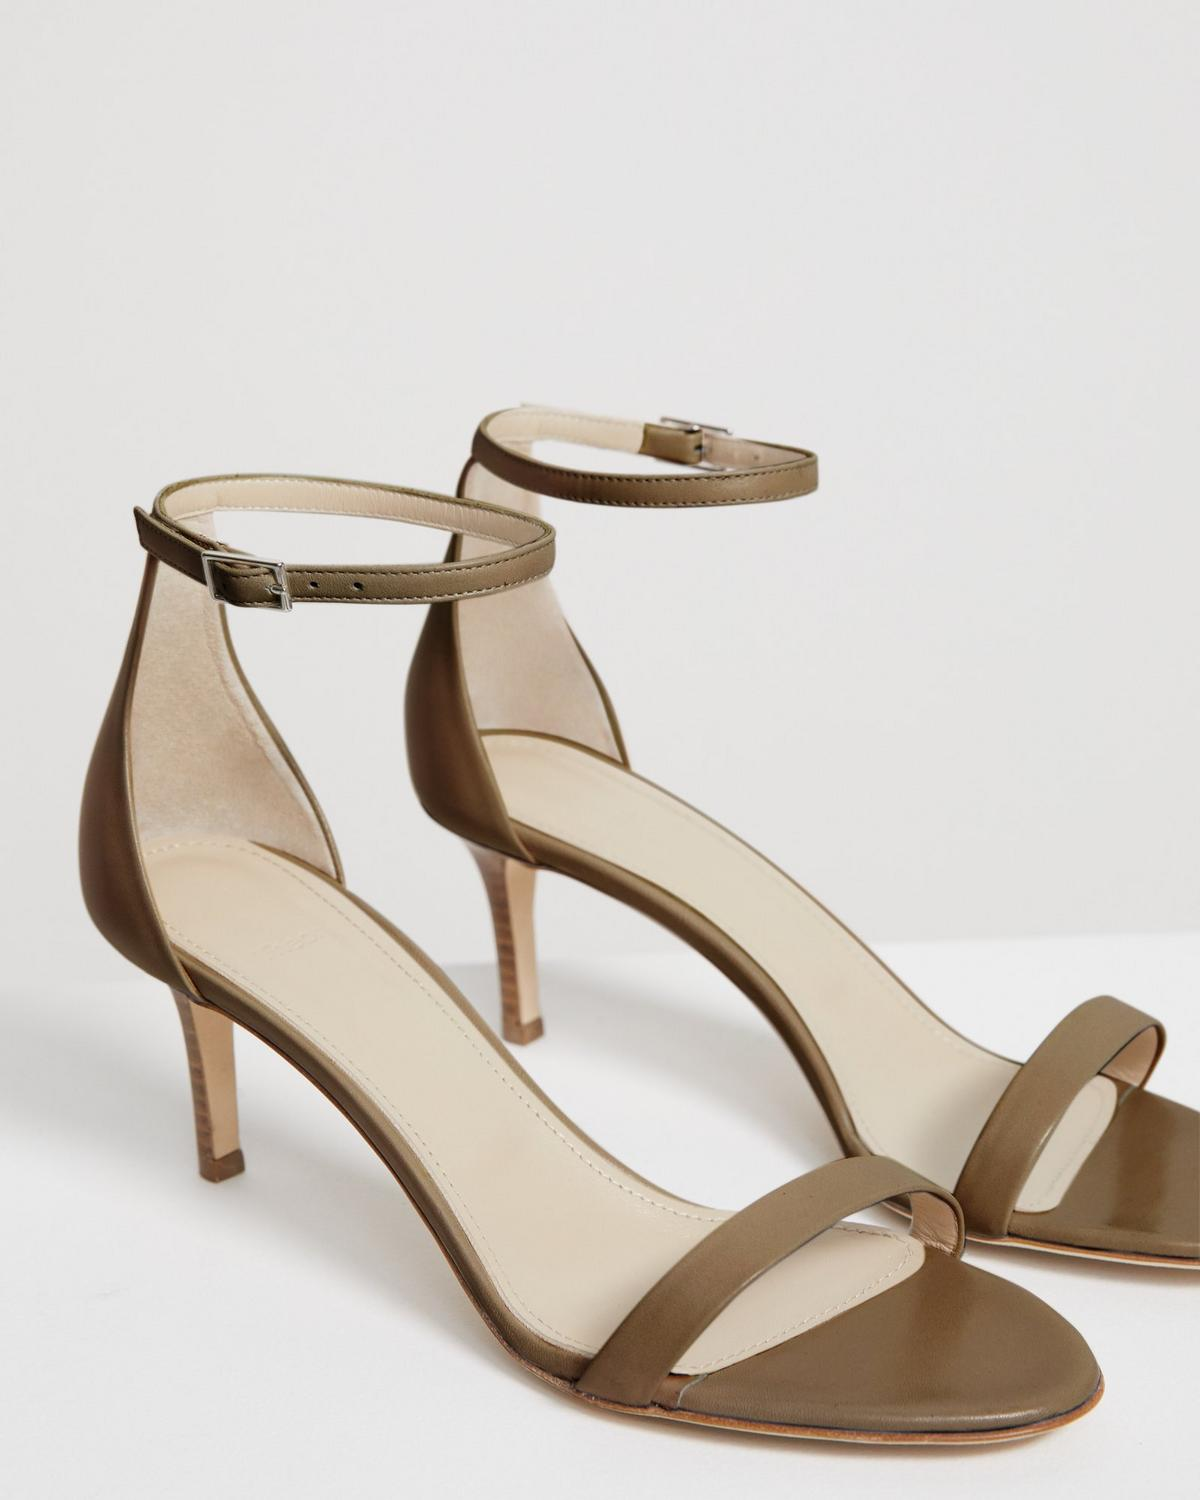 Strap Sandal in Leather